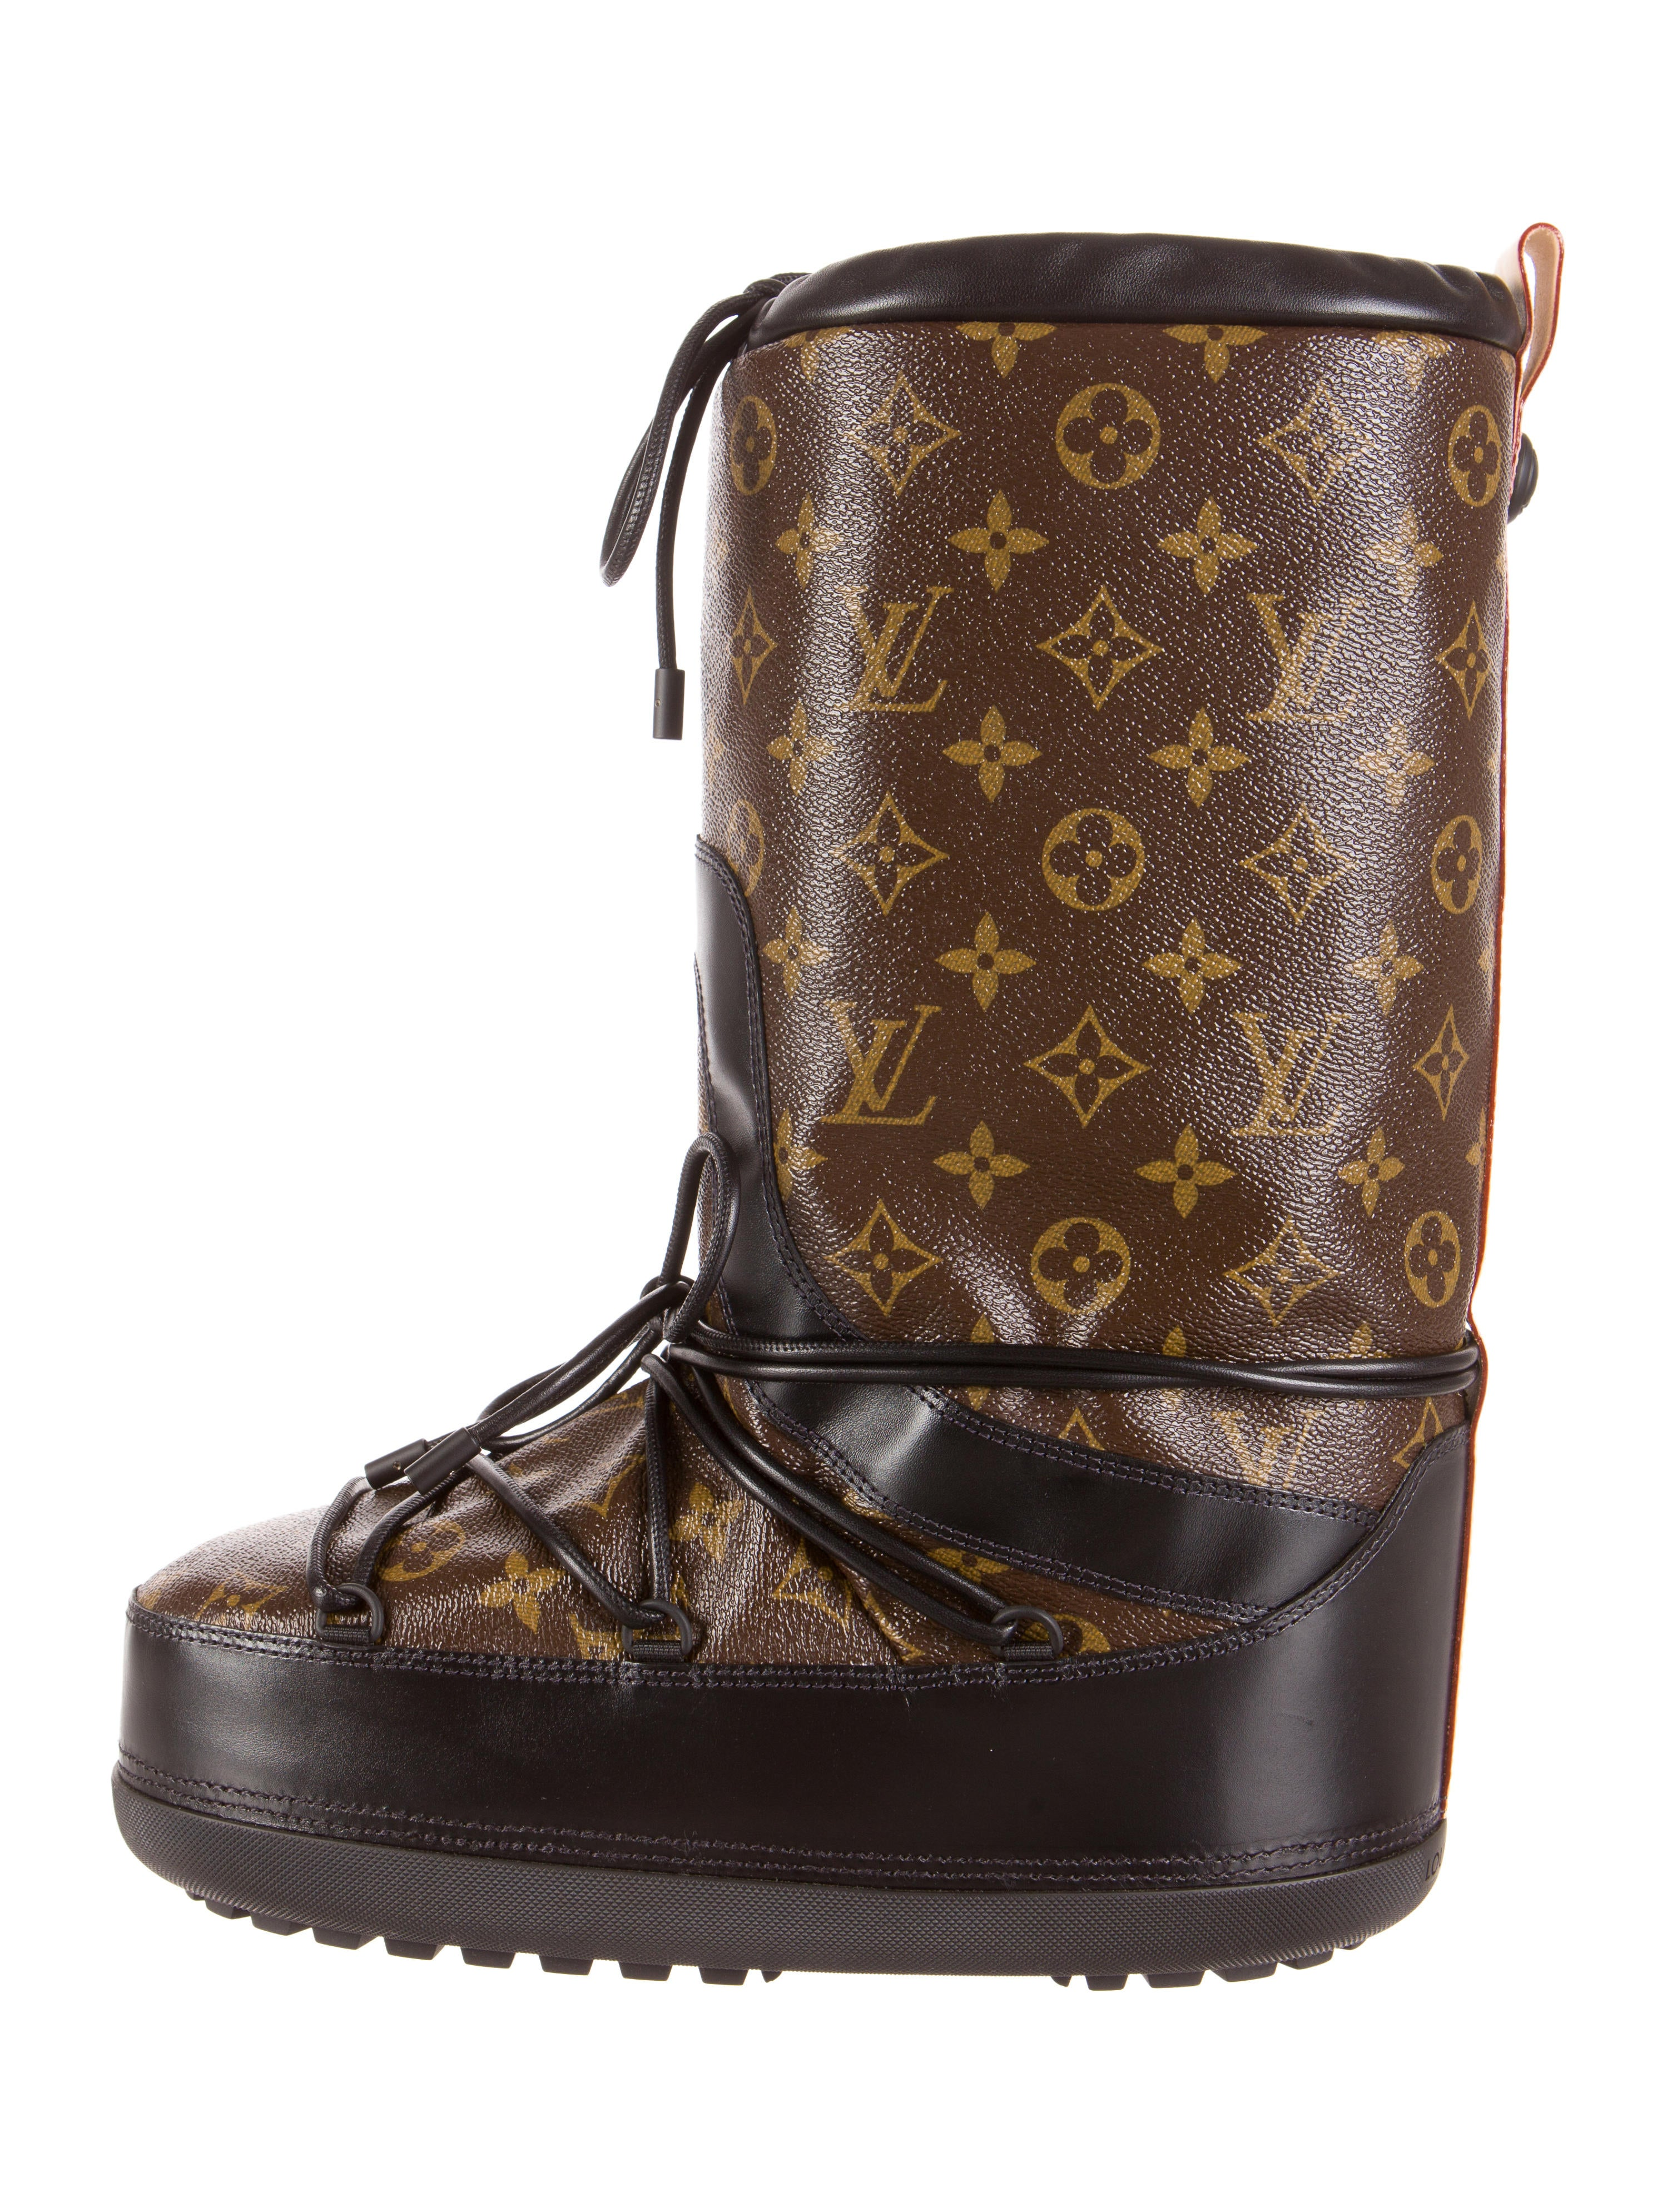 Louis Vuitton Snow Day Boot Shoes LOU56487 The RealReal : LOU564871enlarged from www.therealreal.com size 3016 x 3979 jpeg 1319kB